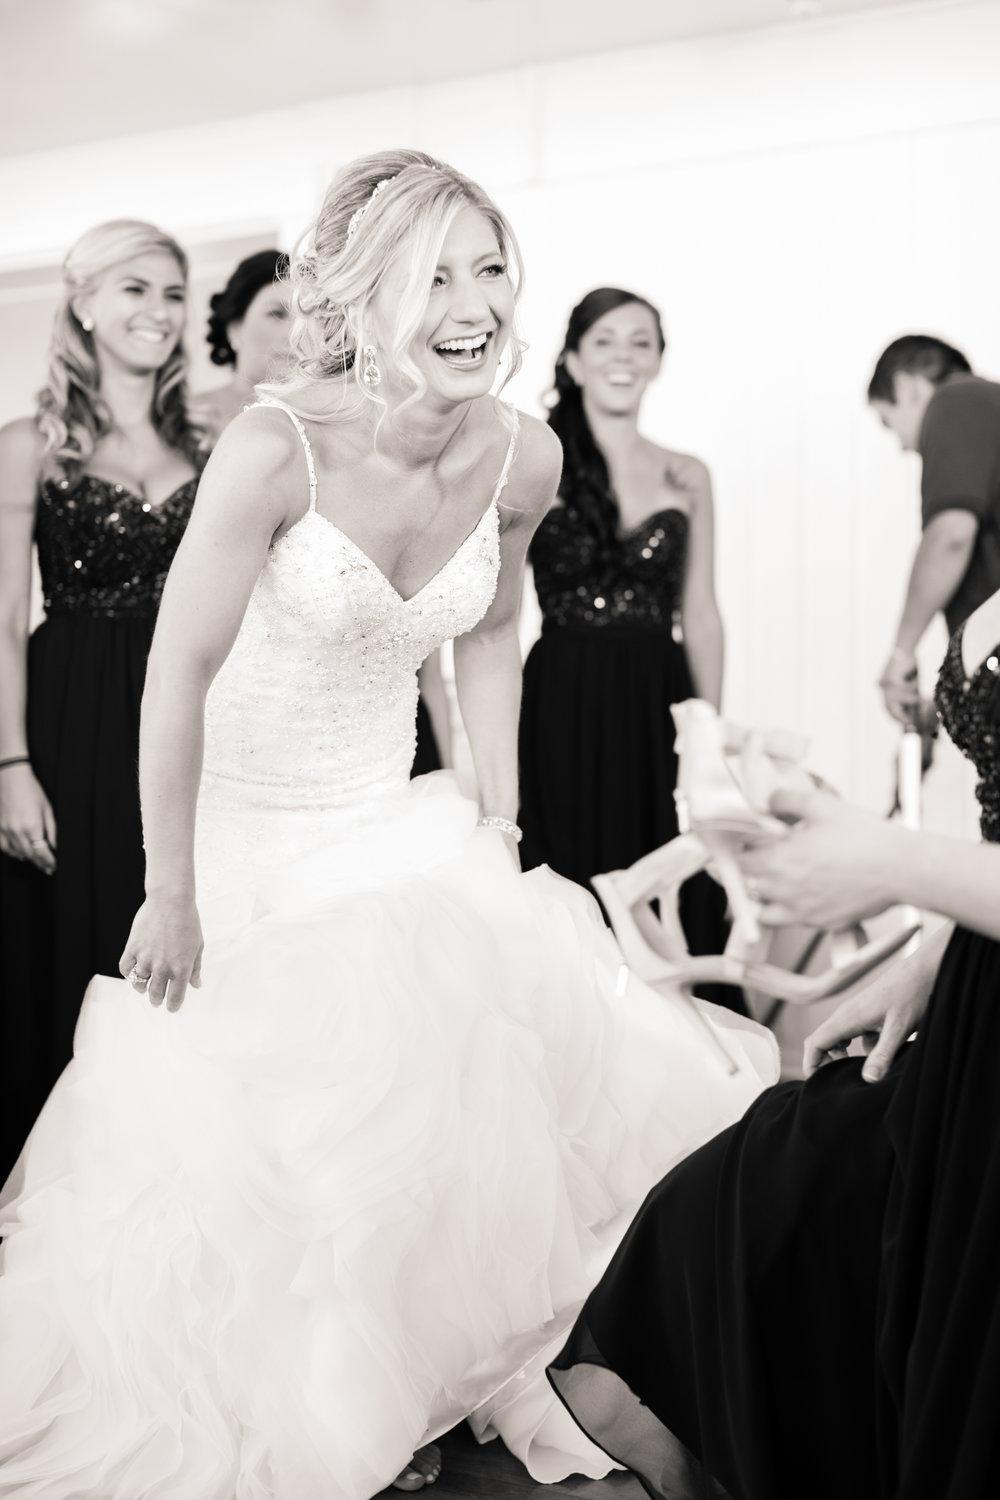 Charissa_Matthew_WeddingReedit-67.jpg